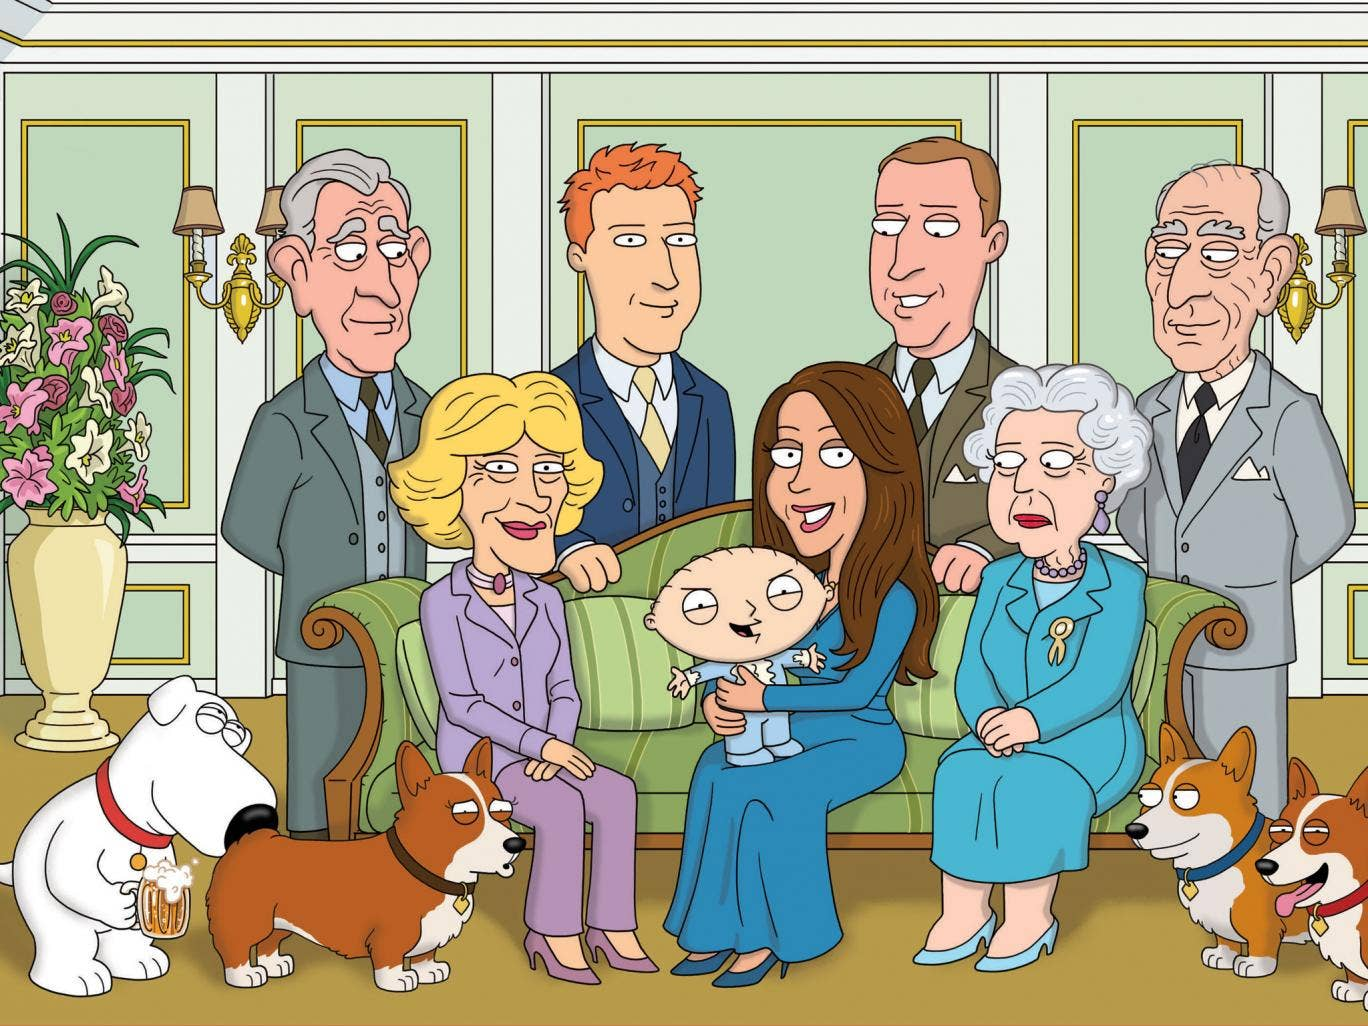 Family Guy spoofs the royal christening, with the cherubic Prince George replaced by the demonic Stewie